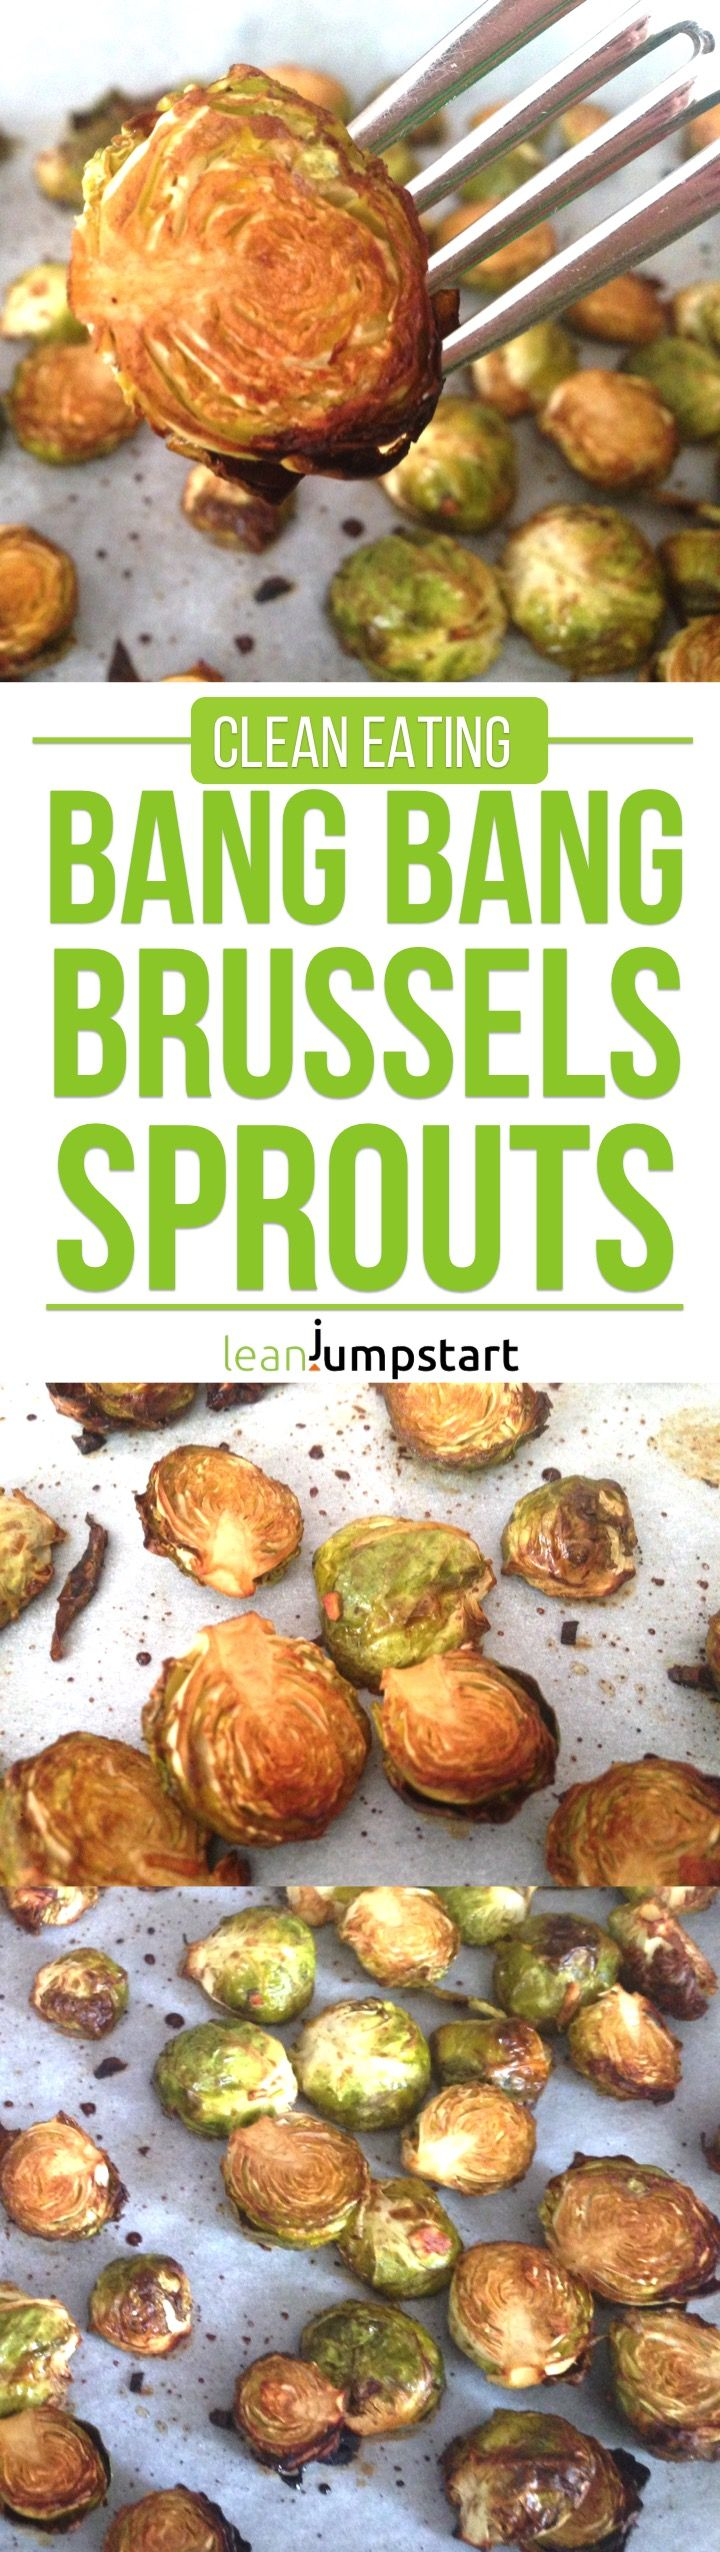 Bang Bang Brussels Sprouts #roastedbrusselssprouts #brusselssprouts #cleaneating via @leanjumpstart